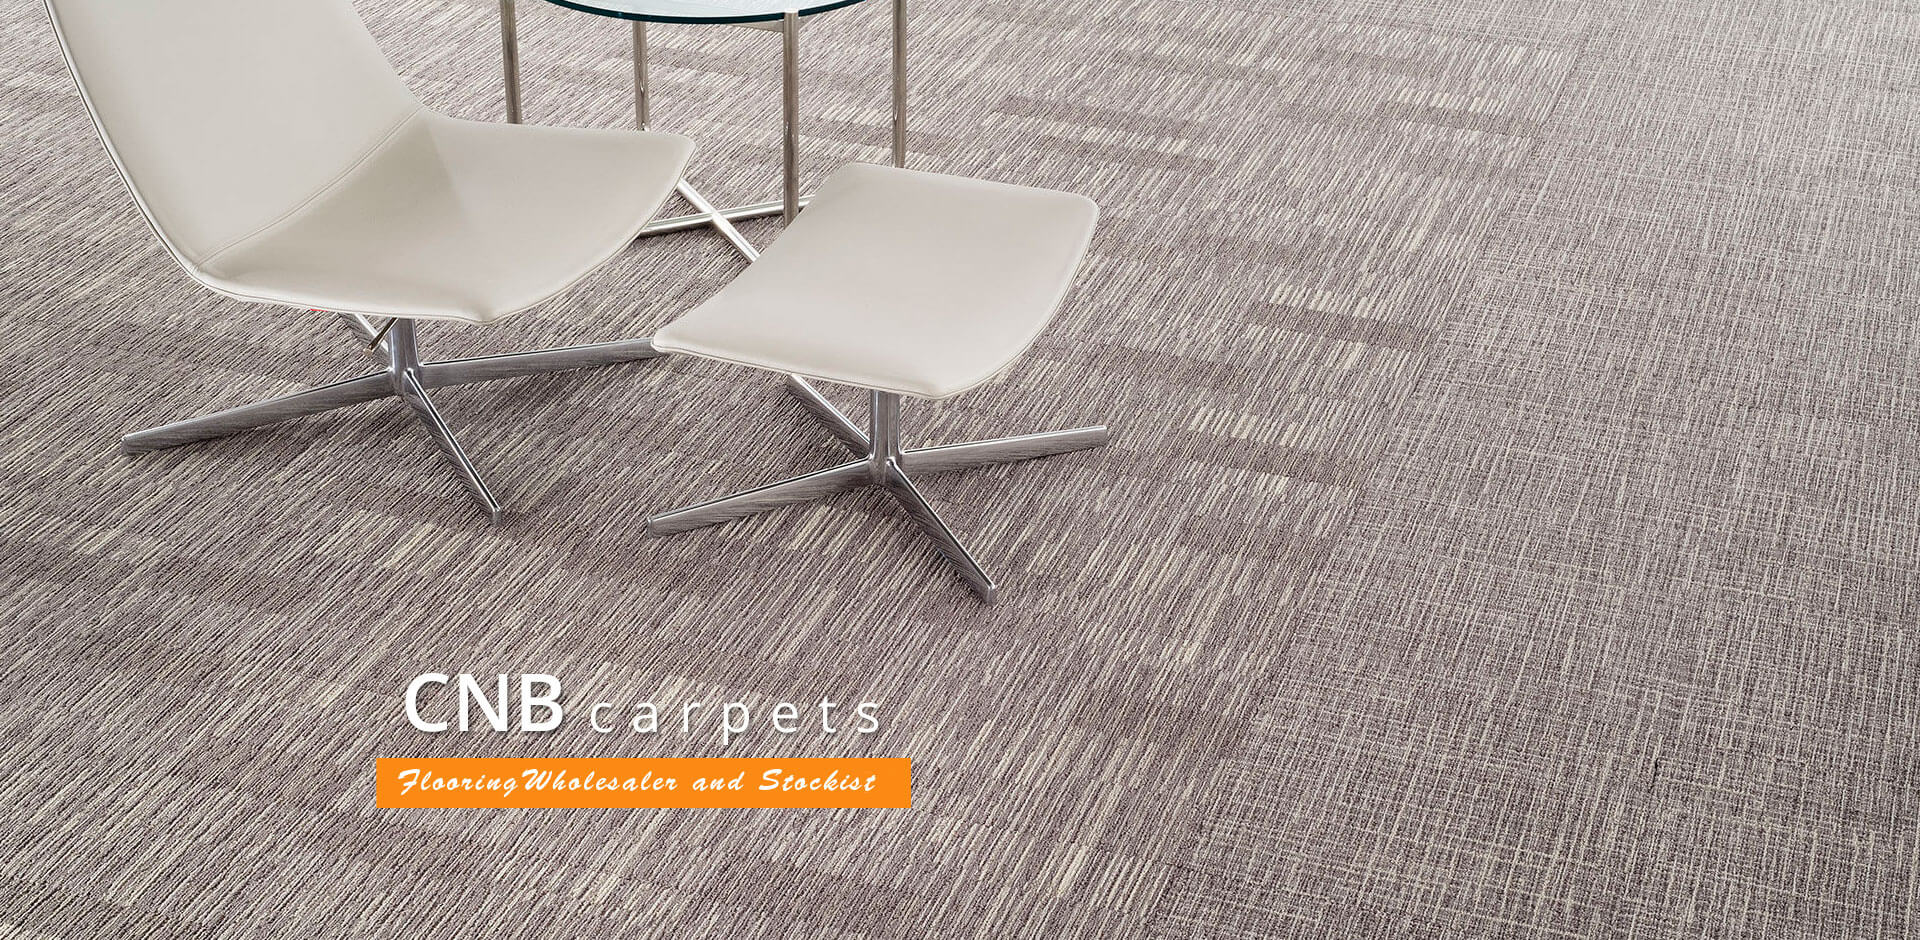 About CNB Carpets